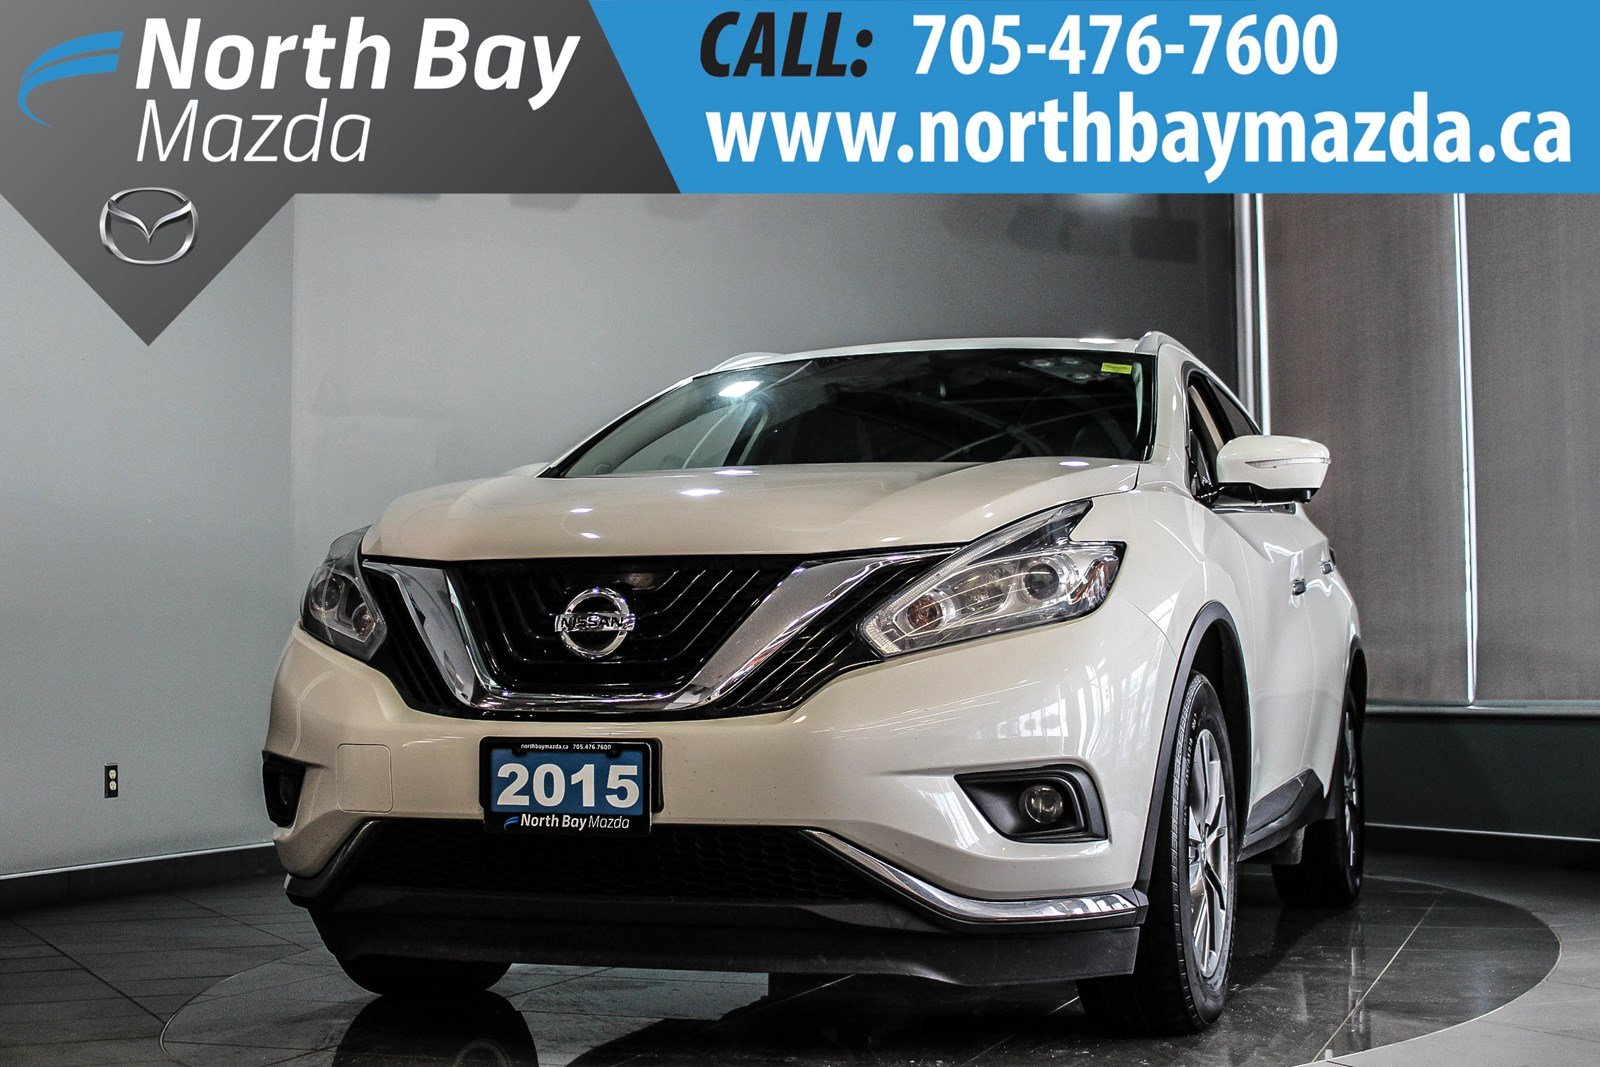 Pre-Owned 2015 Nissan Murano SL AWD with Leather and Panoramic Sunroof